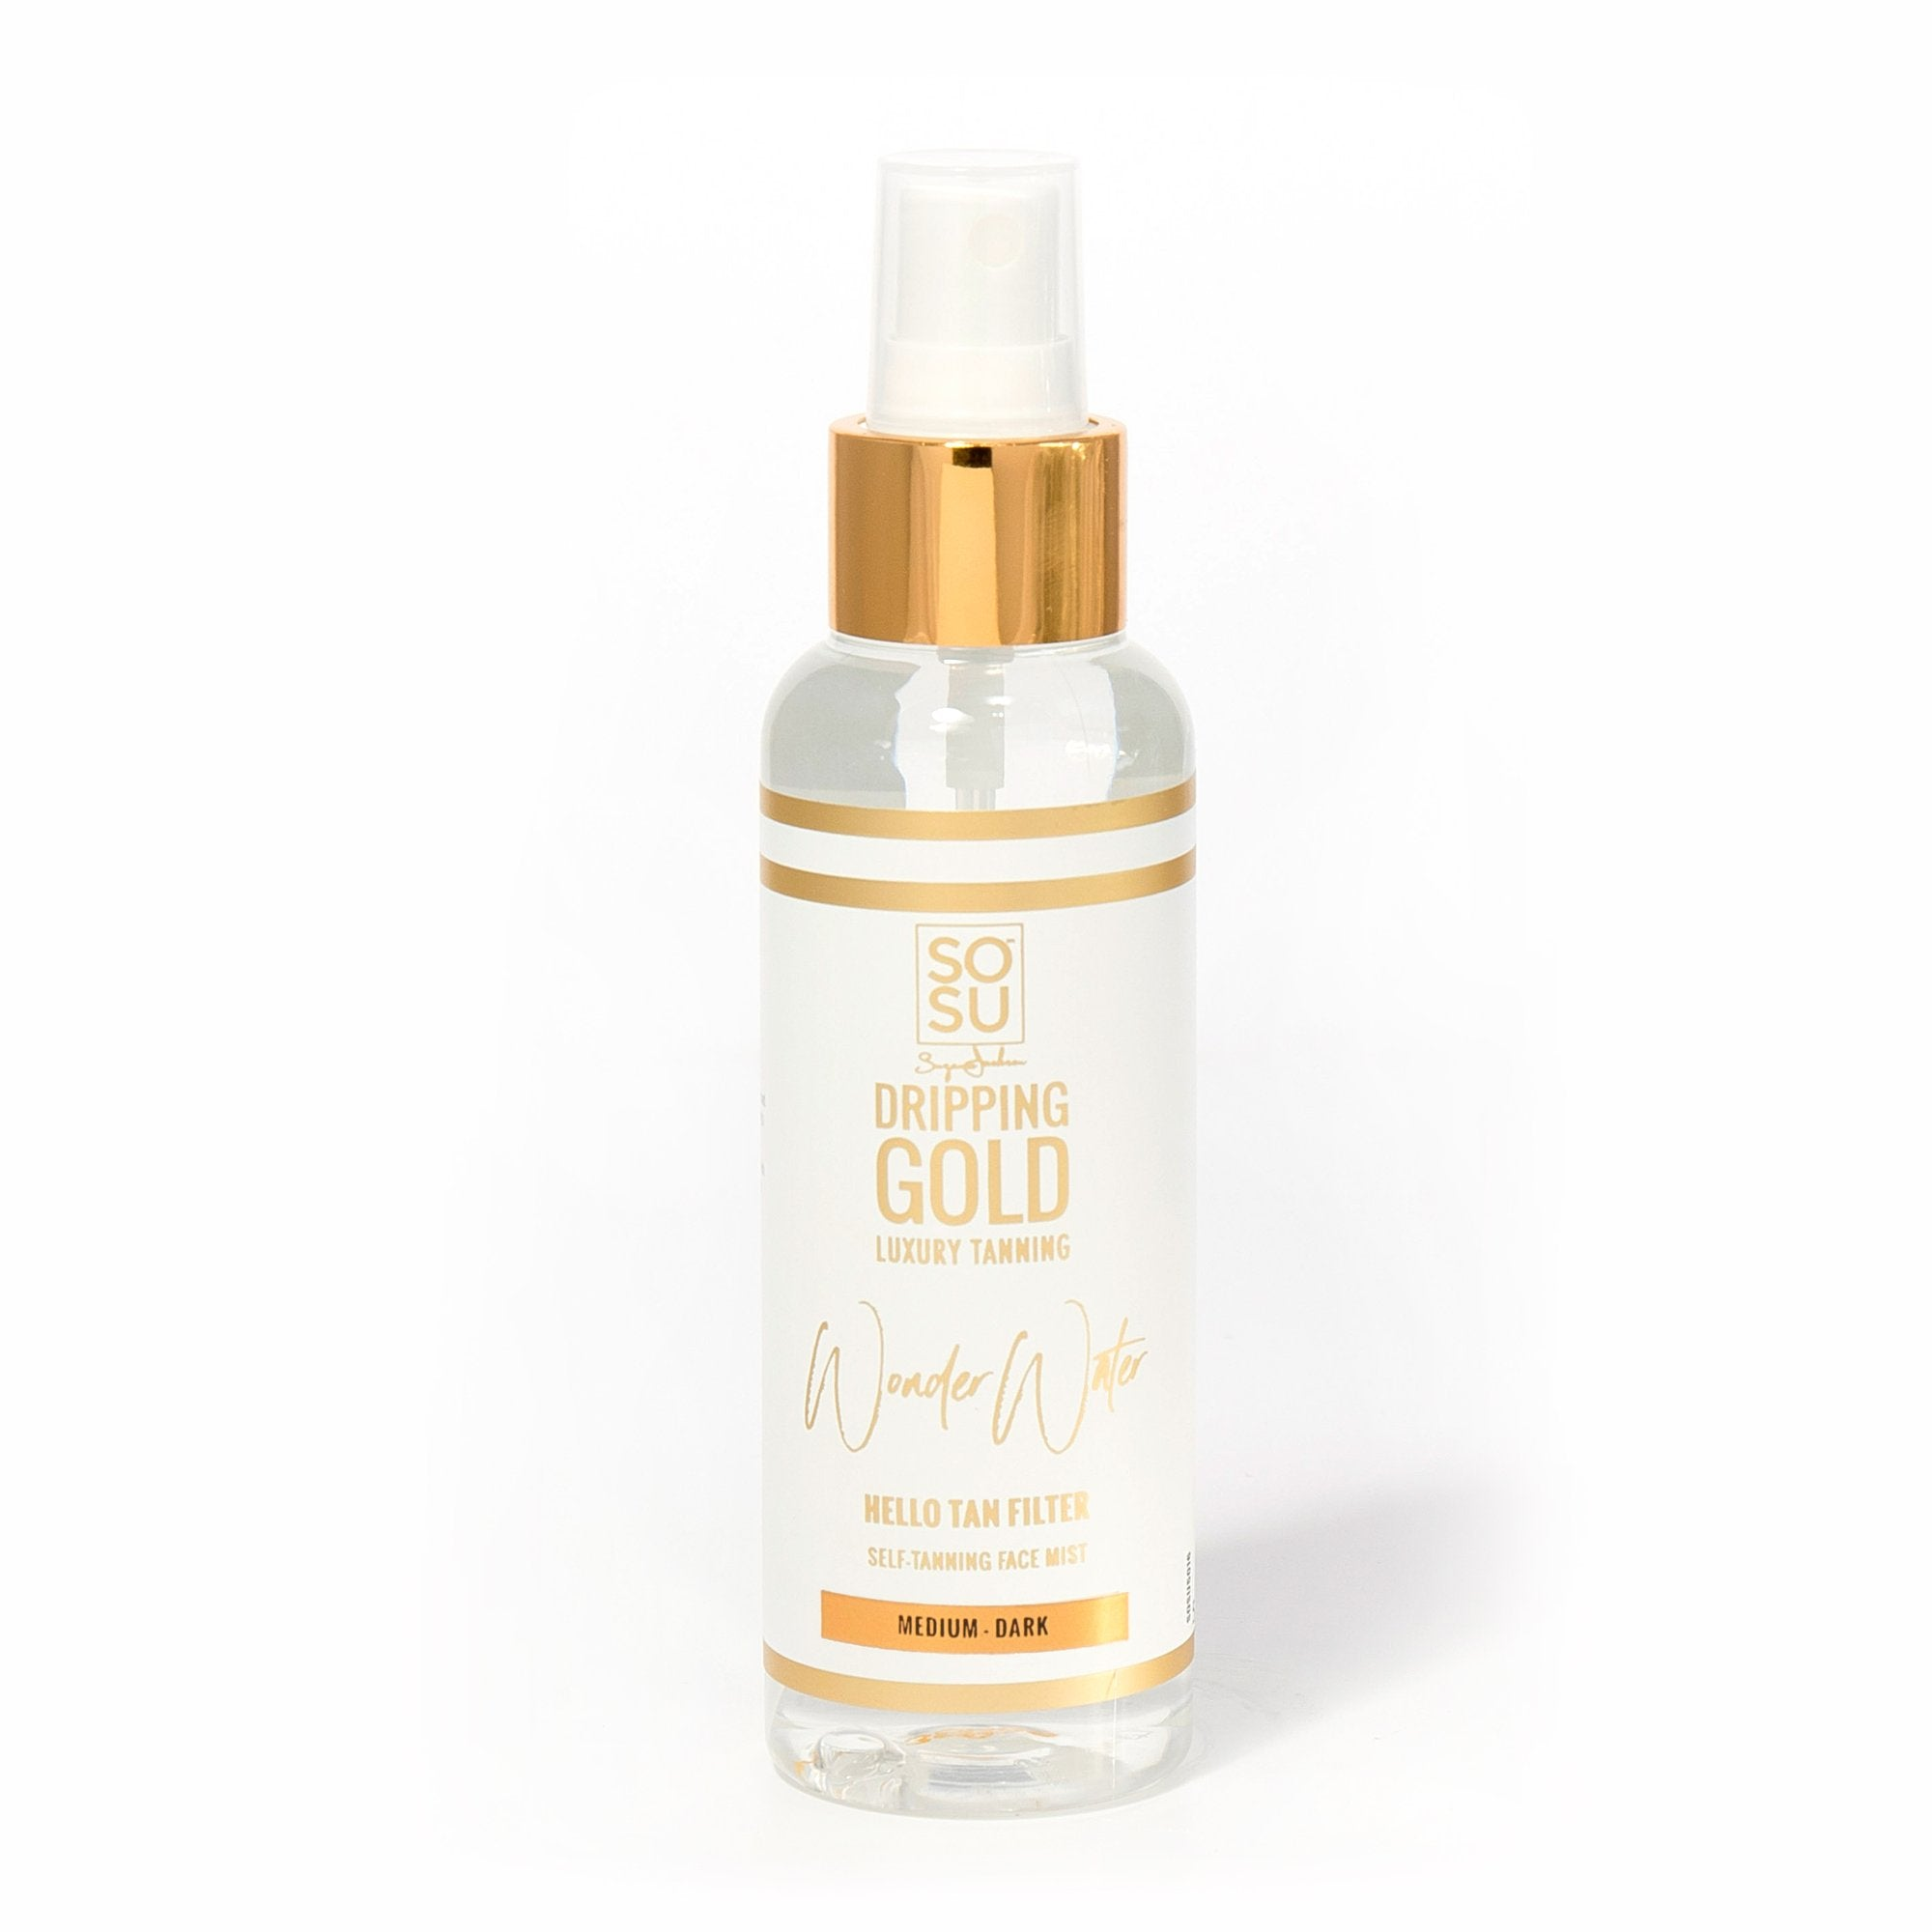 SOSU by Suzanne Jackson Dripping Gold Wonder Water Facial Mist Medium-Dark 125ml